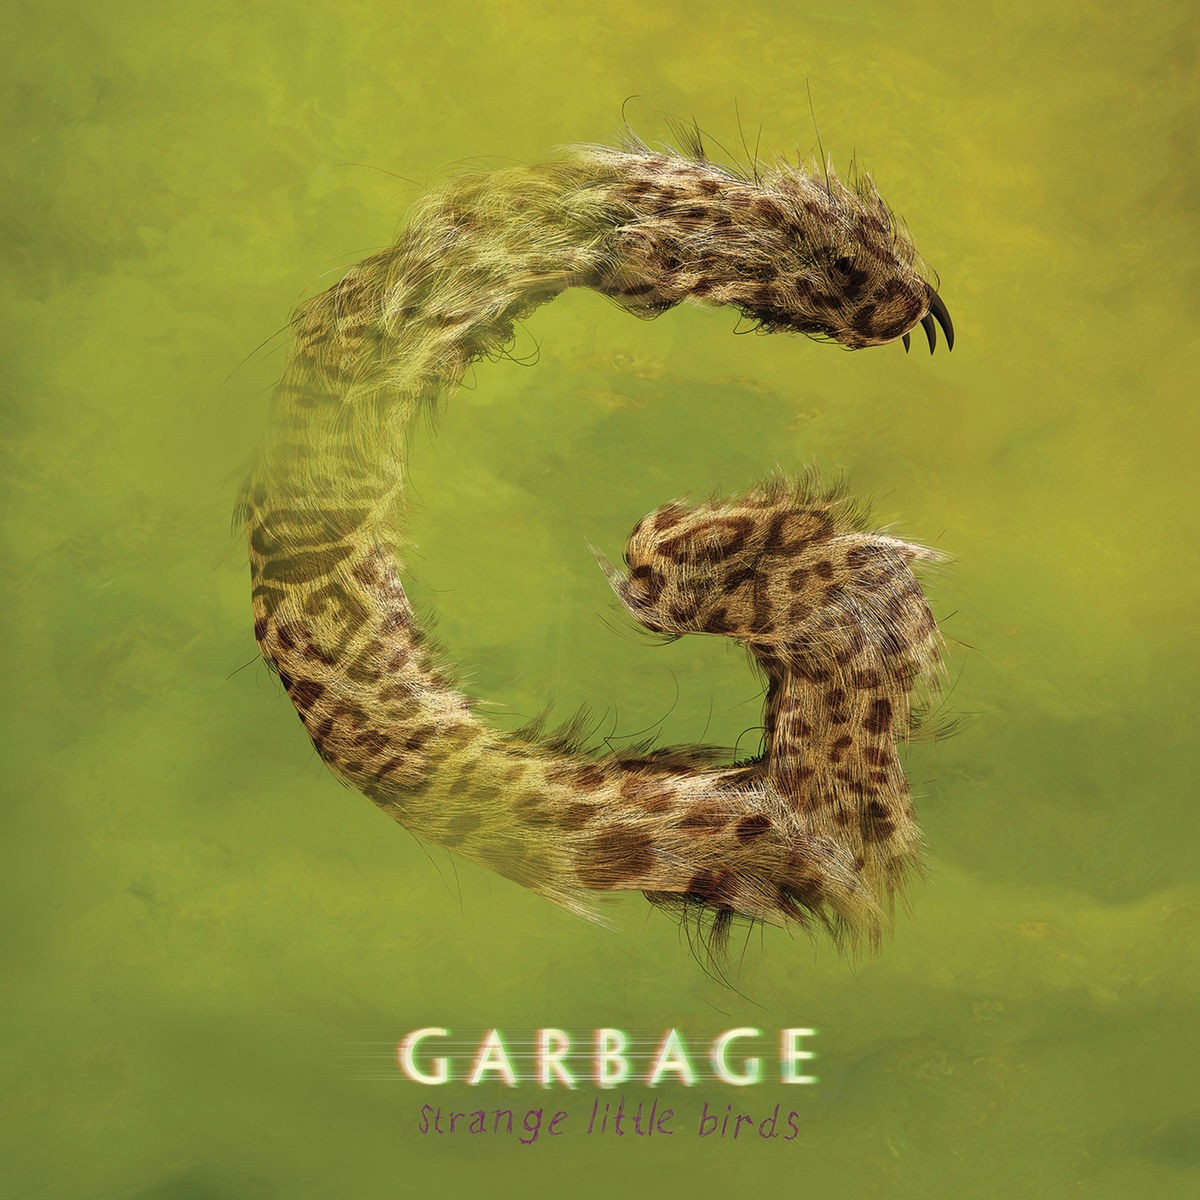 Garbage - Strange Little Birds CD - STNVOL 023CD